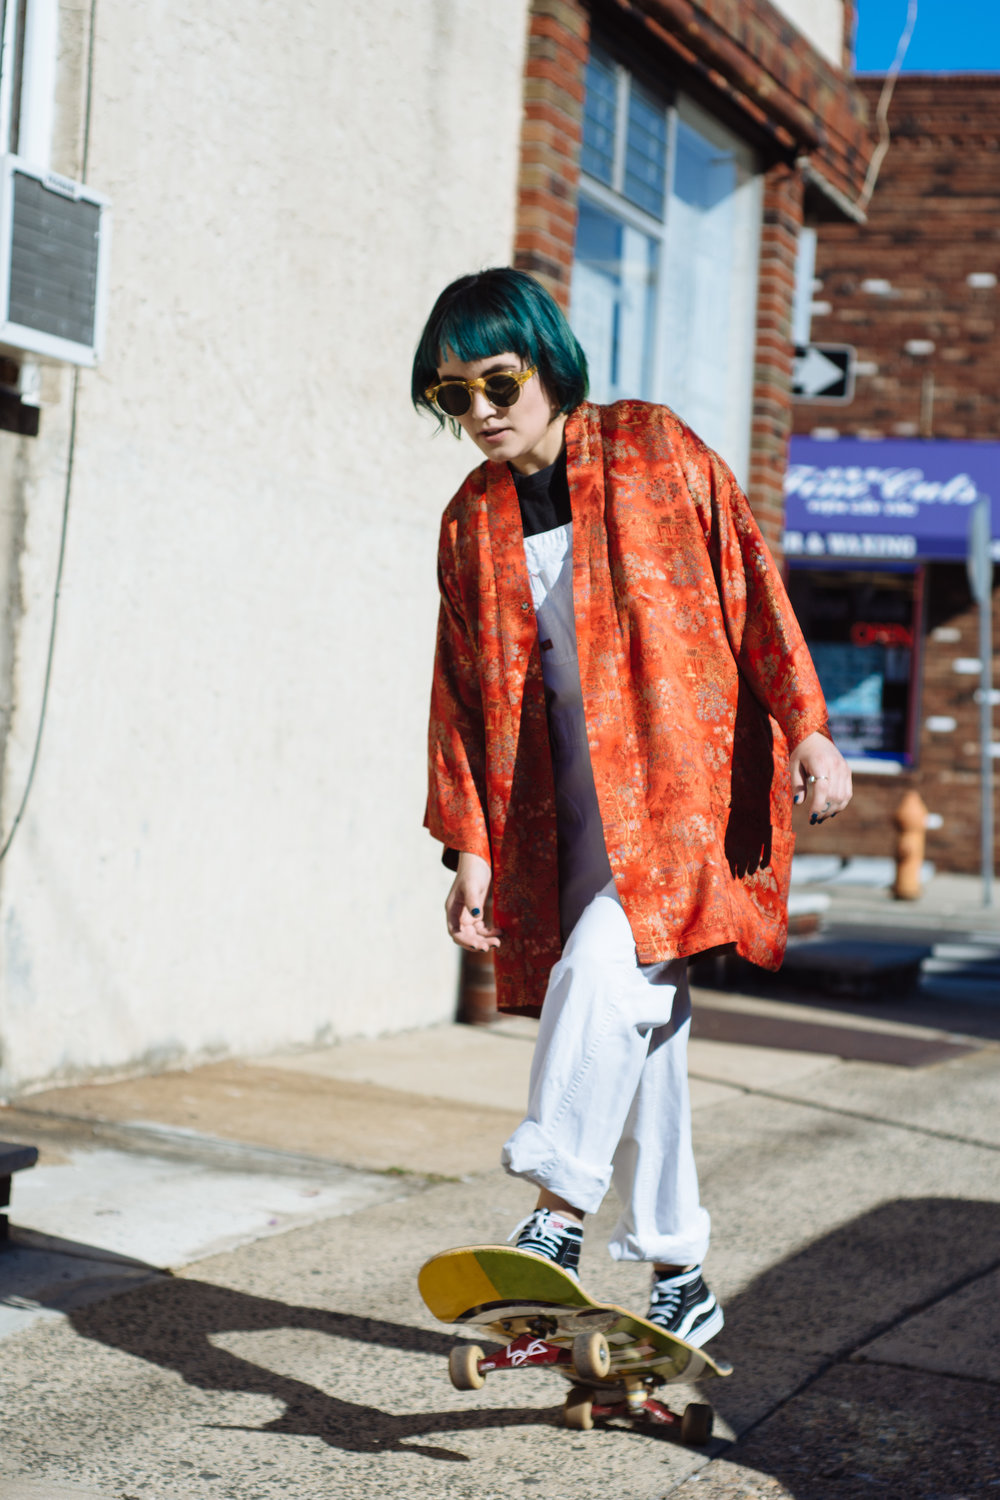 Kimono- Vintage, Overalls- Dickies, Sneakers- Vans, Sunglasses- Urban Outfitters